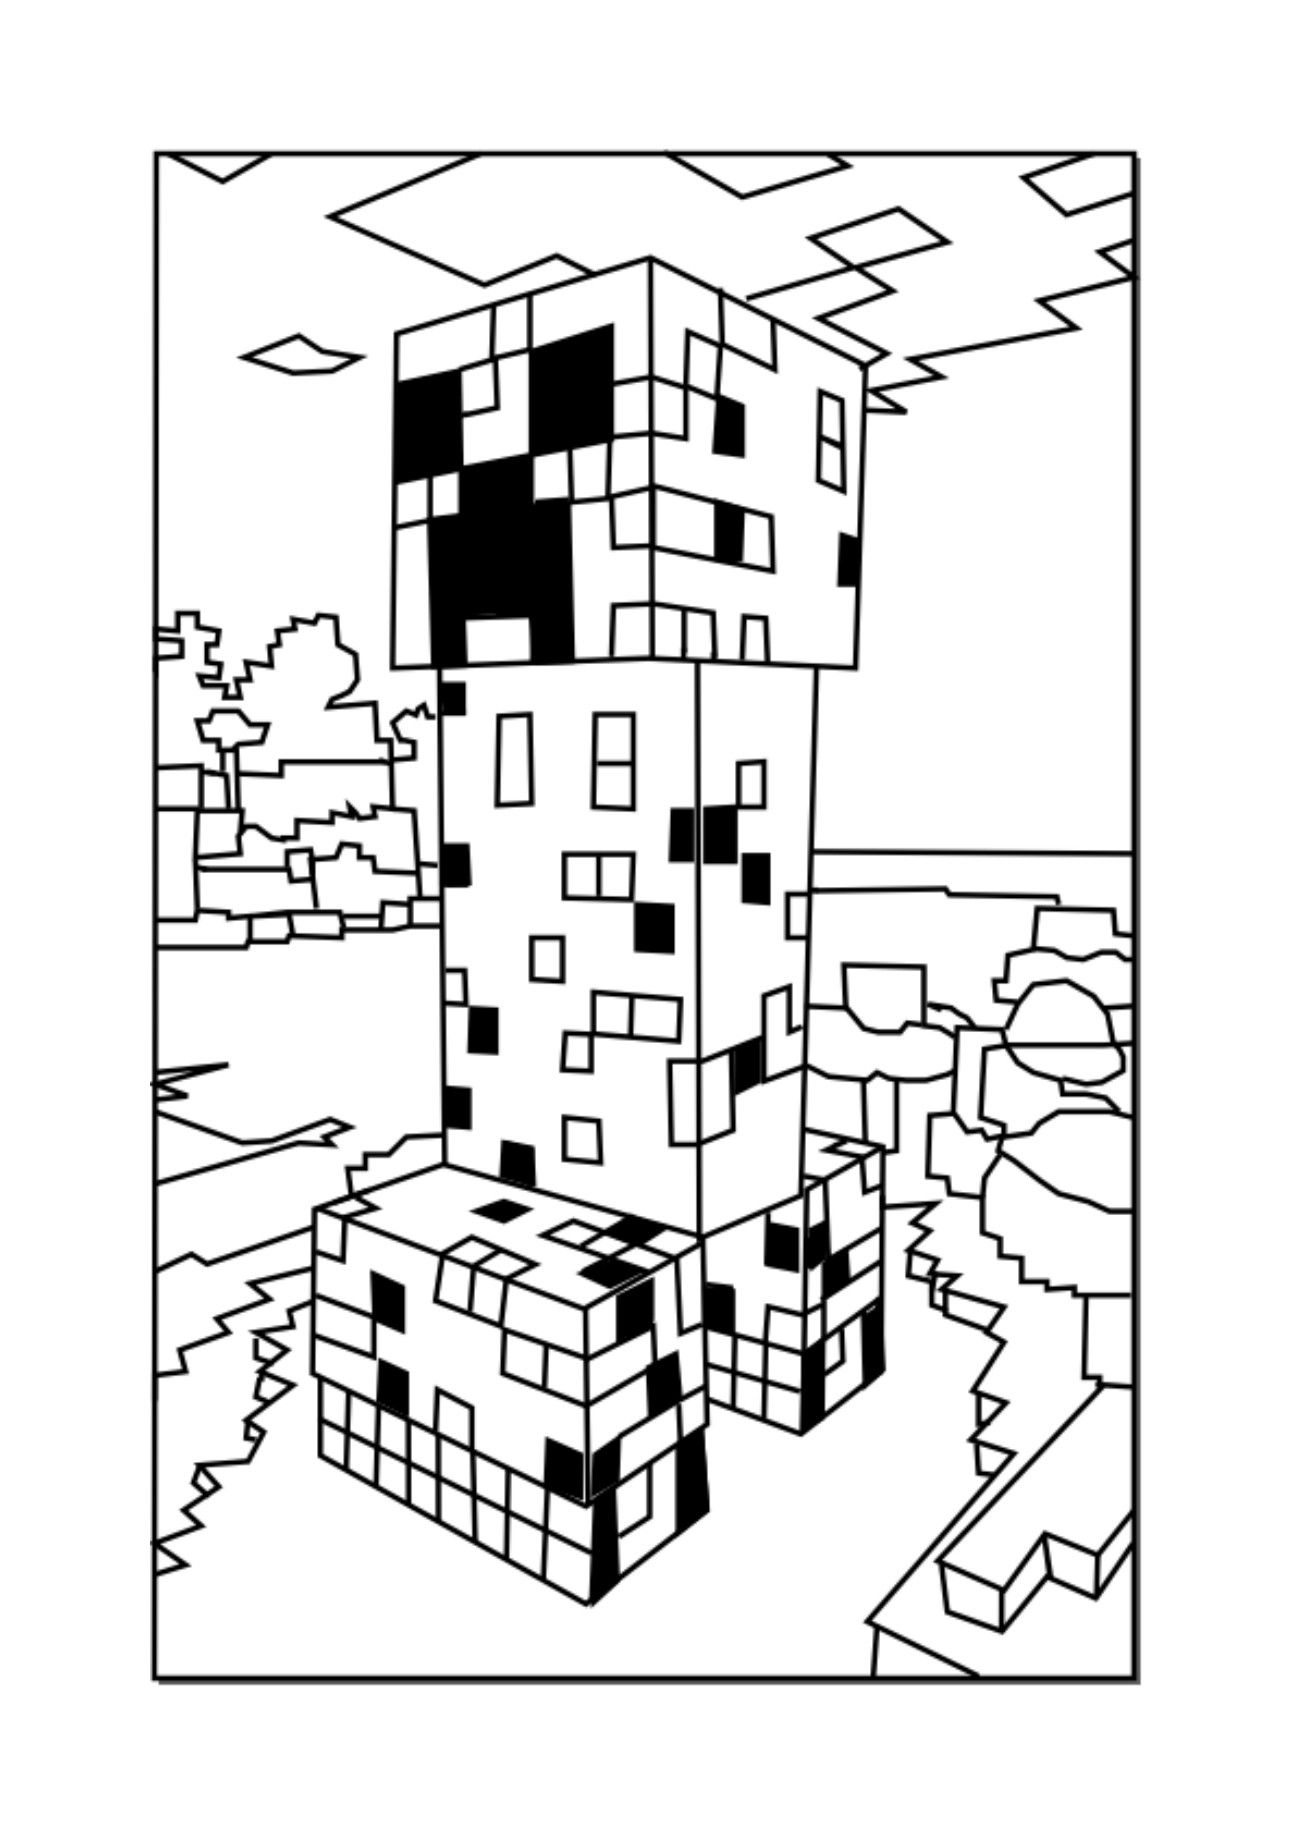 Minecraft Creeper Coloring Page Minecraft Coloring Pages Coloring Pages Free Coloring Pages